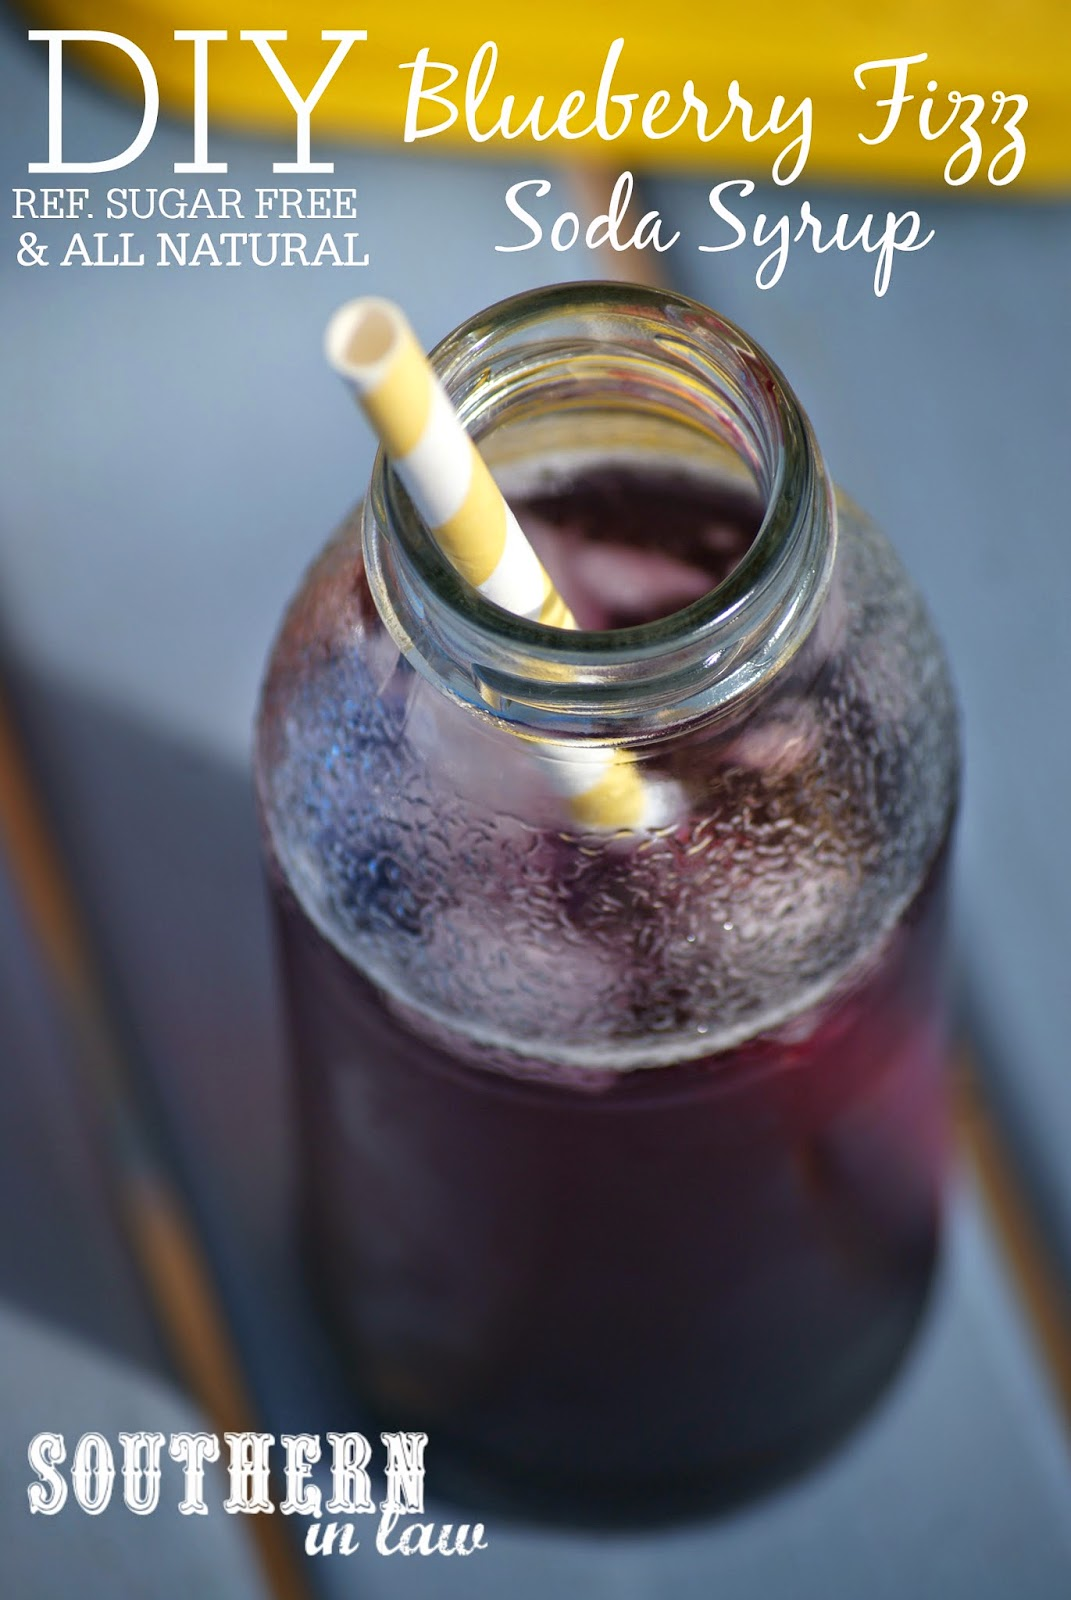 How to make your own Soda Syrups and Soda Flavors - low fat, gluten free, sugar free, all natural